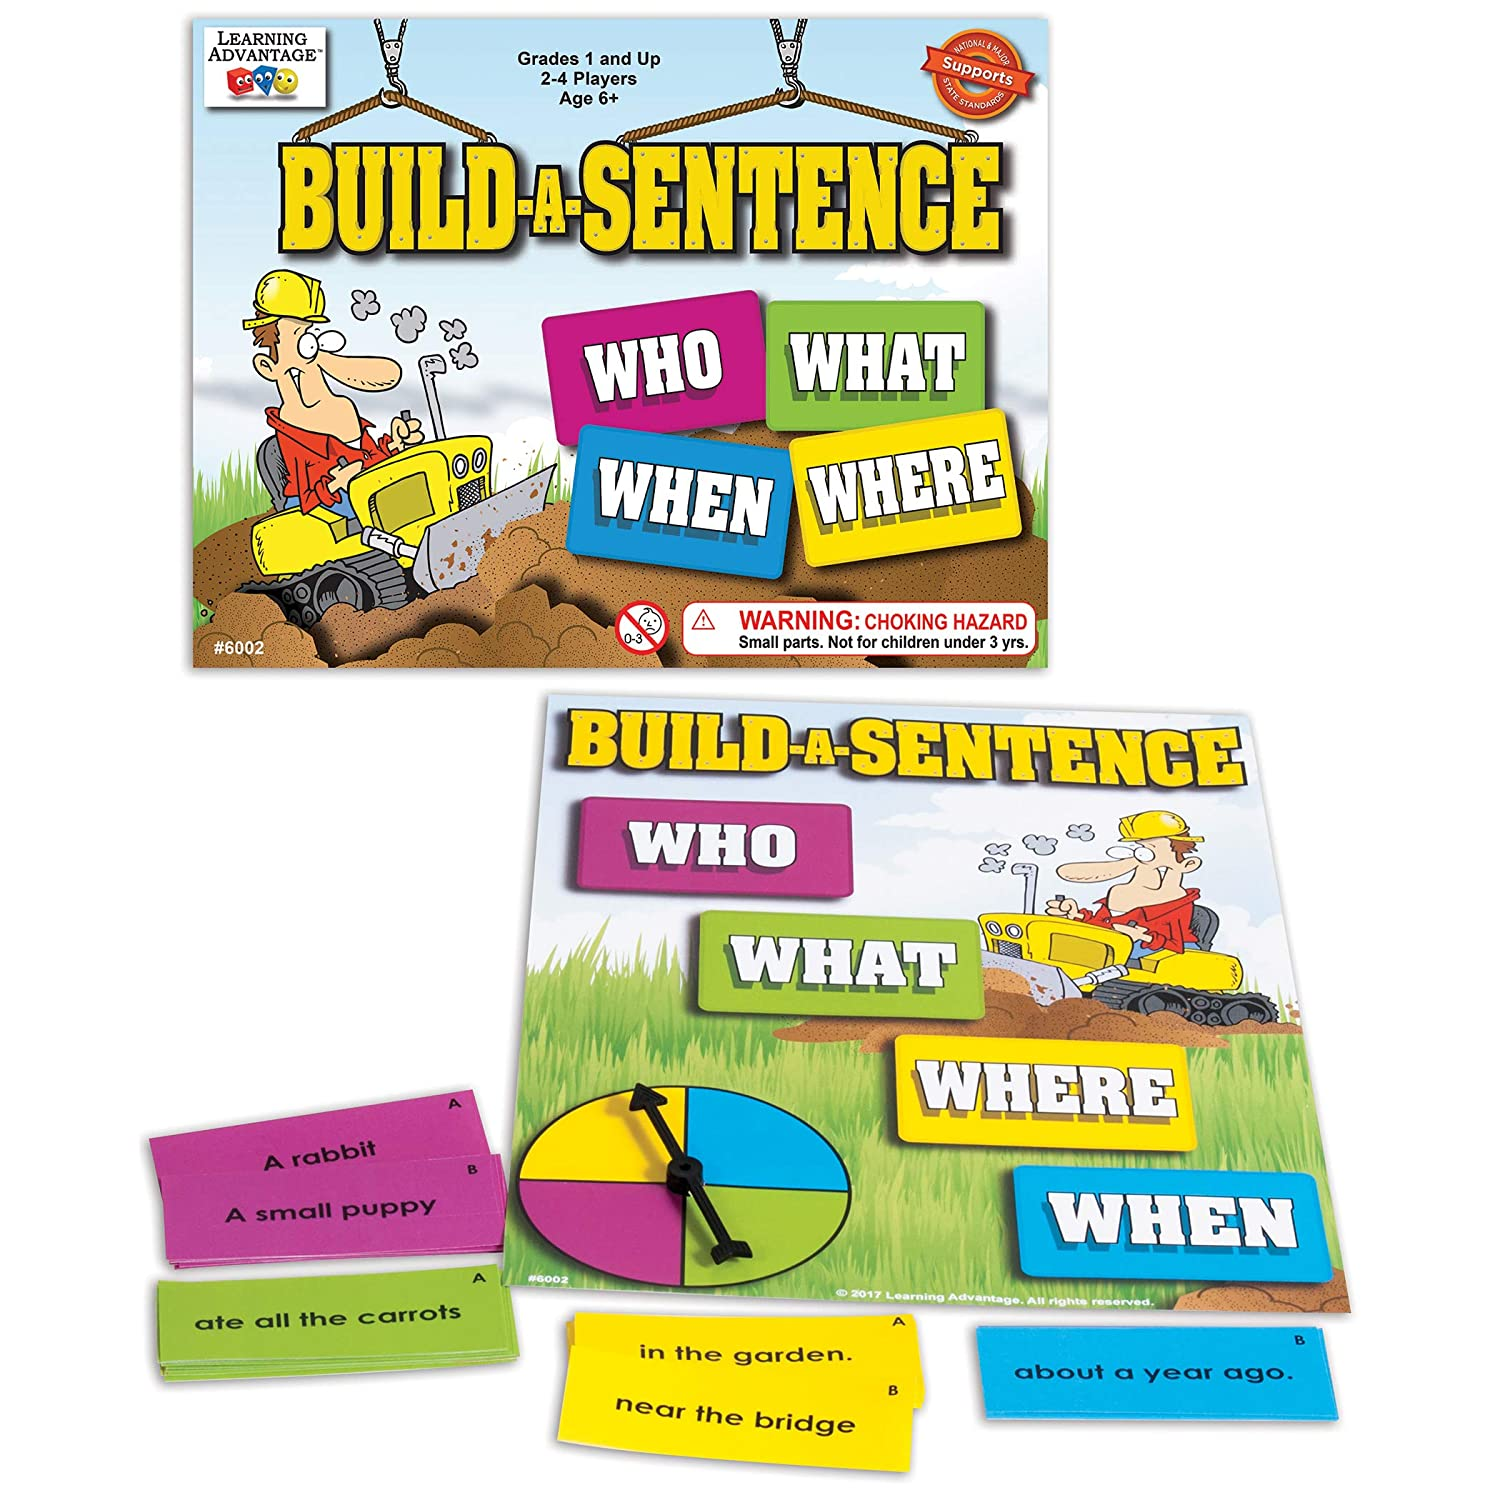 LEARNING ADVANTAGE-6002 Build-A-Sentence Discount is also underway - Games Ki Learning for Ranking TOP13